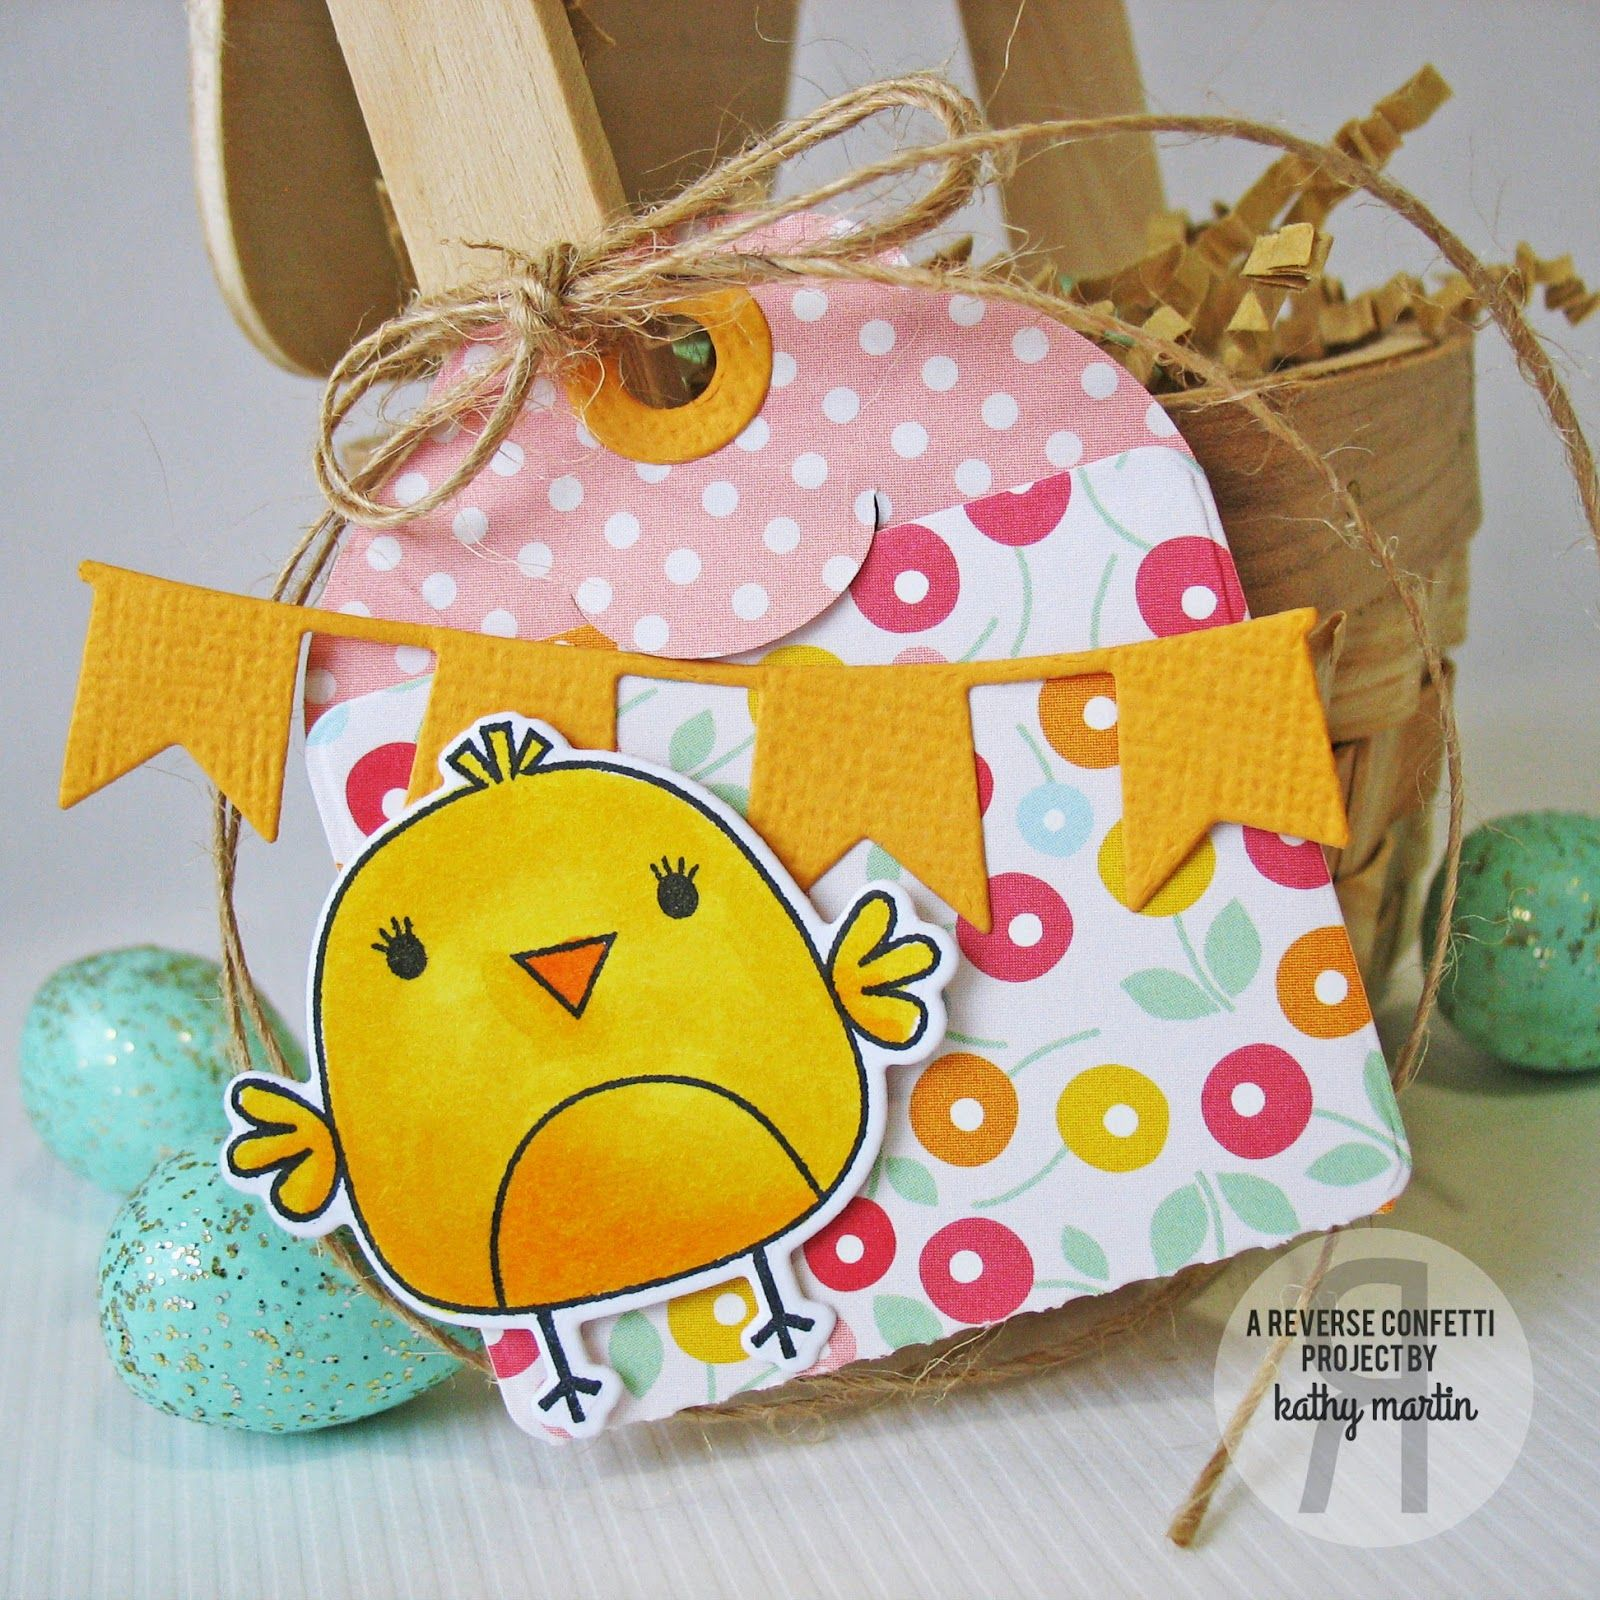 Mini easter basket gift by kathy martin for rc using the